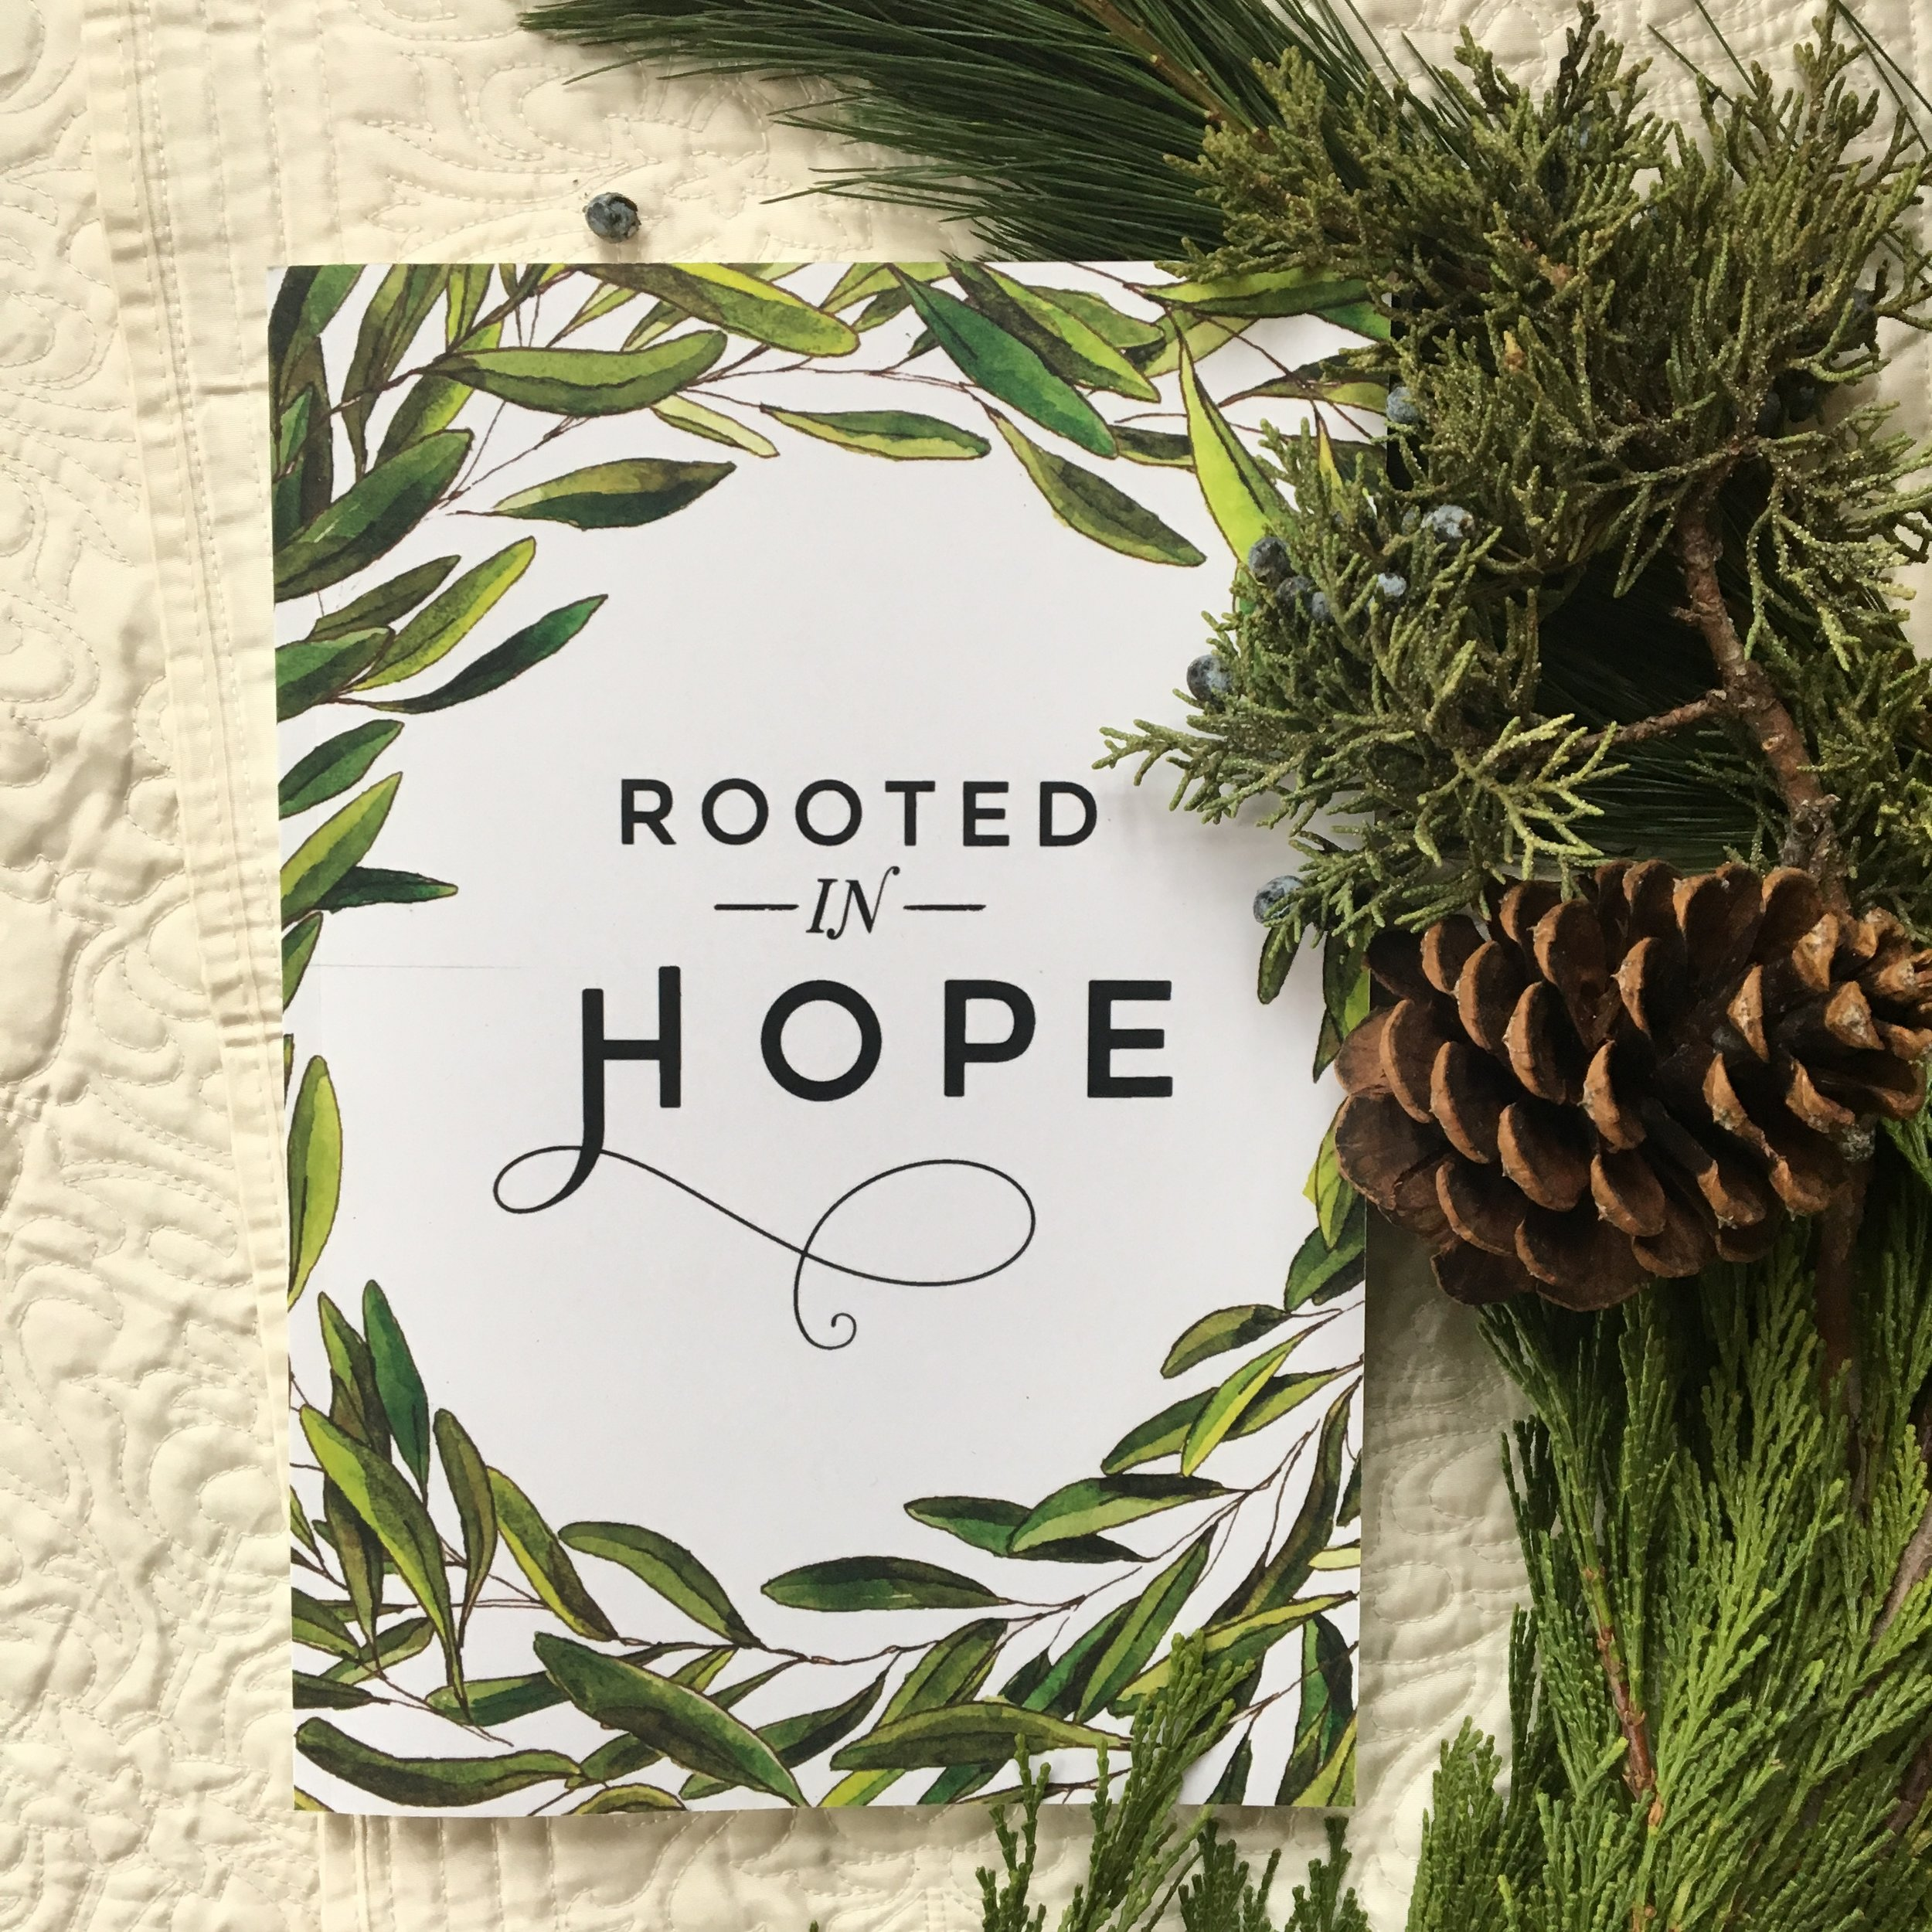 Rooted in Hope - A newly revised bestseller, Rooted in Hope is a 33-day Advent and Christmas study that extends from November 30 to January first. In a look at Scriptures that tell the stories of prominent biblical figures, this study echoes and expands upon the popular Advent tradition of a Jesse tree. For each day, you'll find Scripture, a devotional essay, pages for guided lectio divina, and space to organize your days. Journaling pages and useful planning pages feature clear and elegant design, exquisite hand-drawn illustrations, and gorgeous calligraphy. A handy companion for Advent and Christmas seasons, the book will become a treasured keepsake for the woman who uses it.